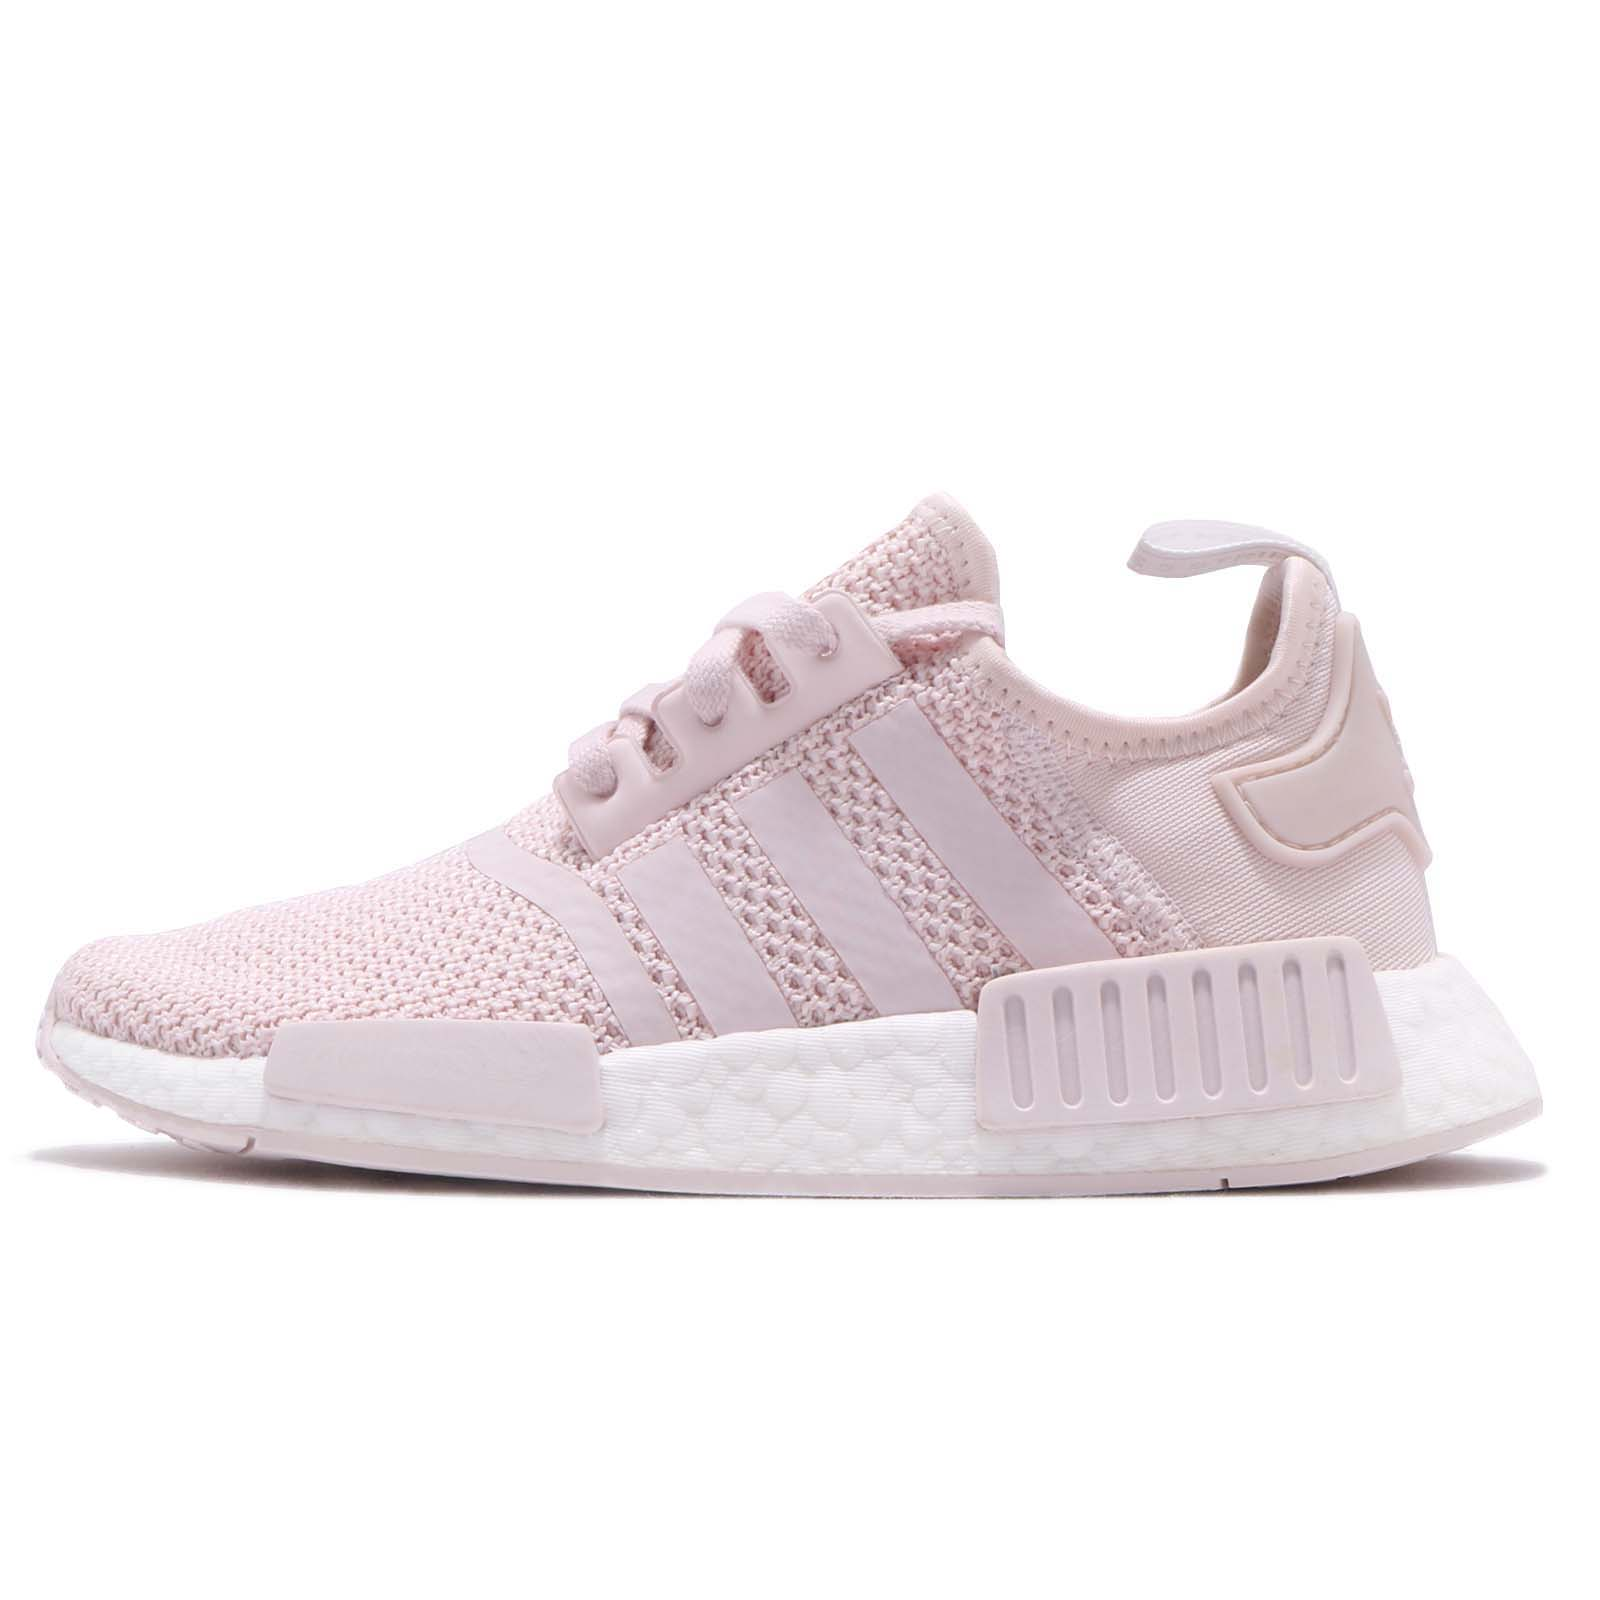 63b42a21a1922 adidas Originals NMD R1 W Orchid Tint Pink Women Running Shoes Sneakers  B37652